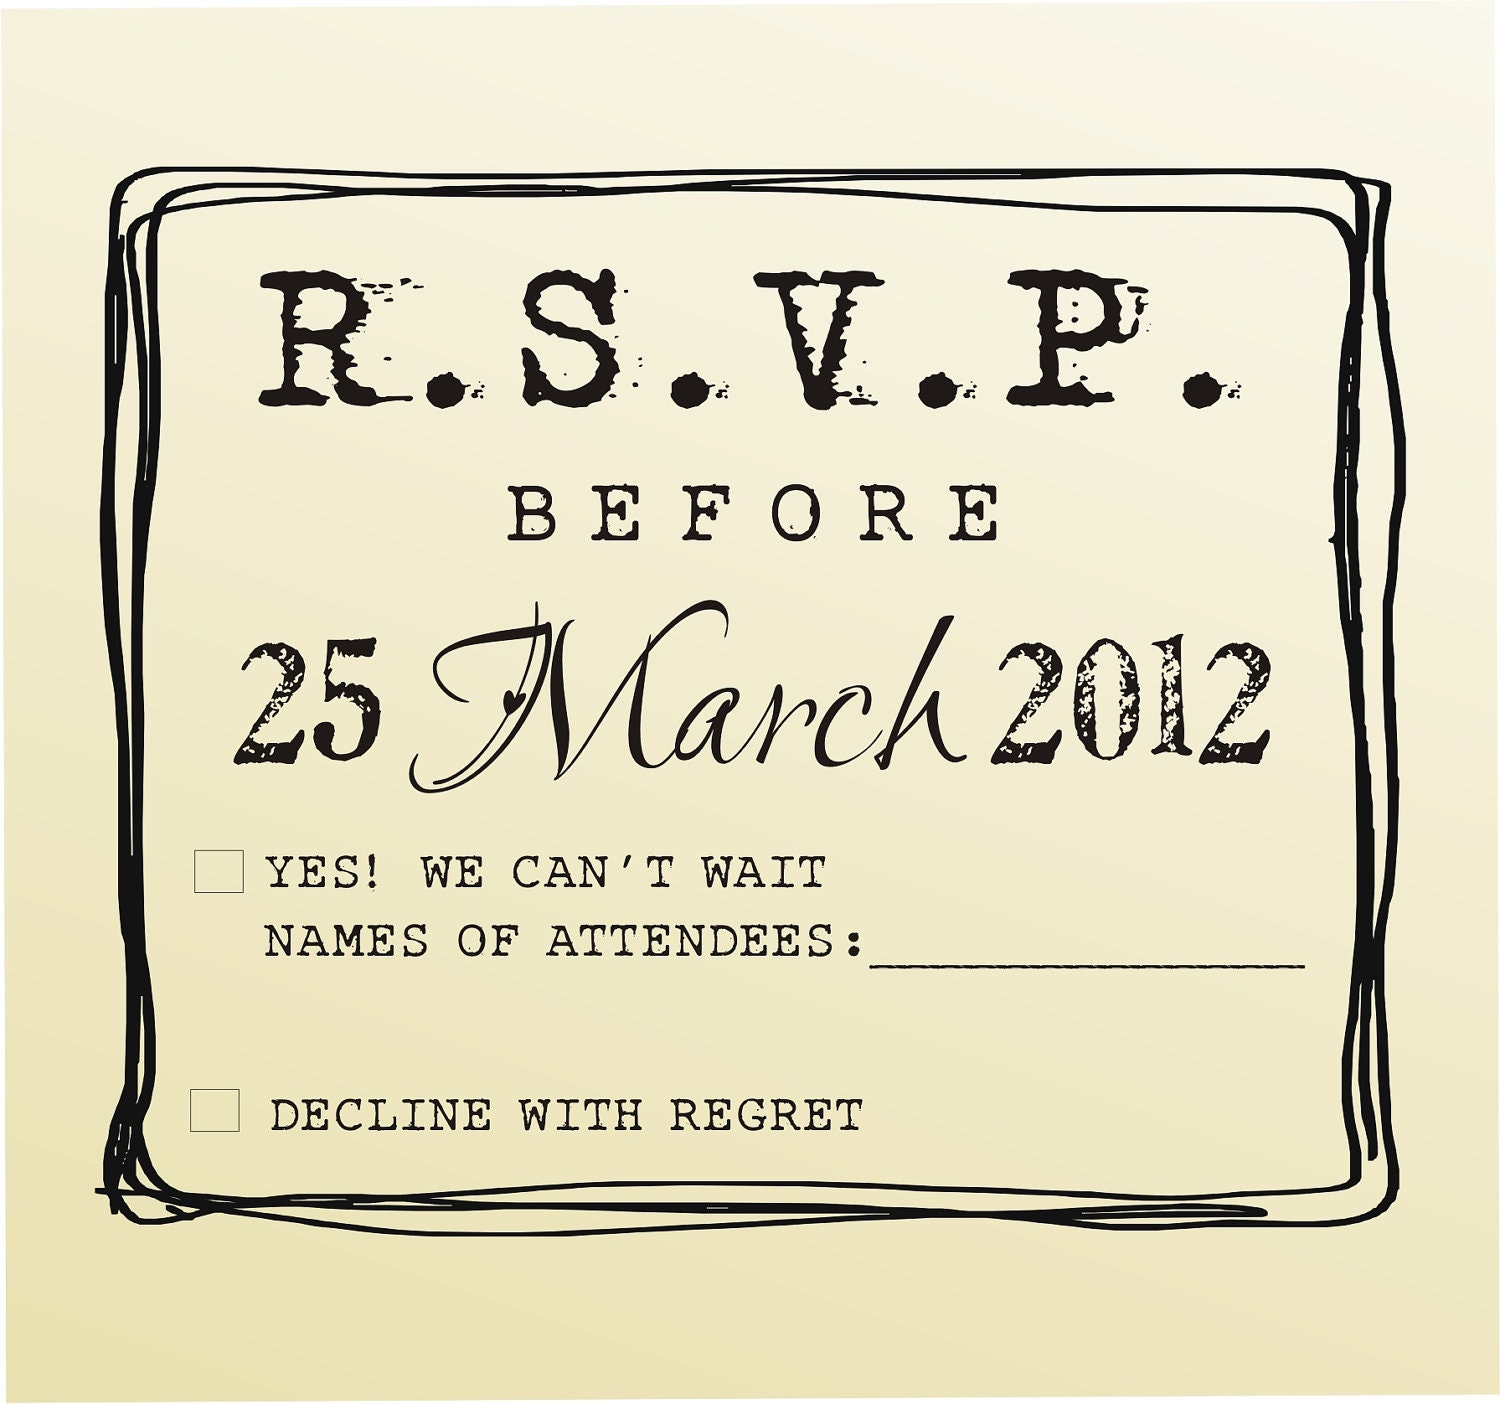 Rsvp rubber stamp for custom diy wedding invitations style for Wedding dress rubber stamp